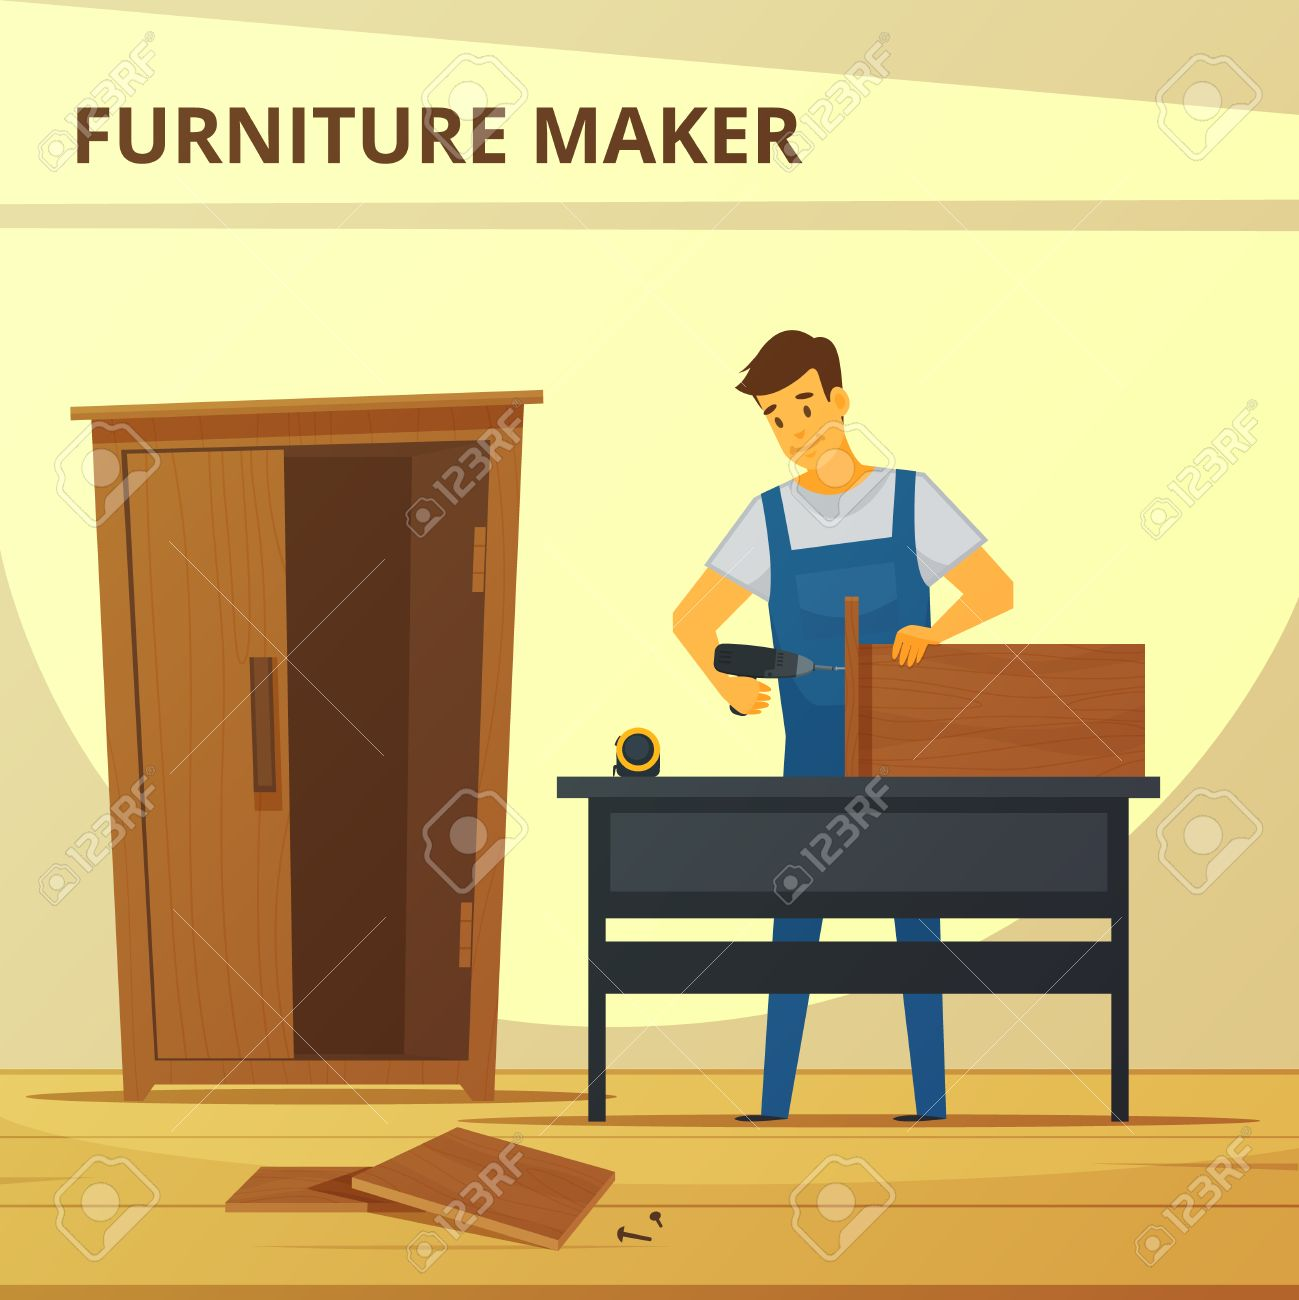 105 Cabinet Maker Stock Illustrations, Cliparts And Royalty Free ...